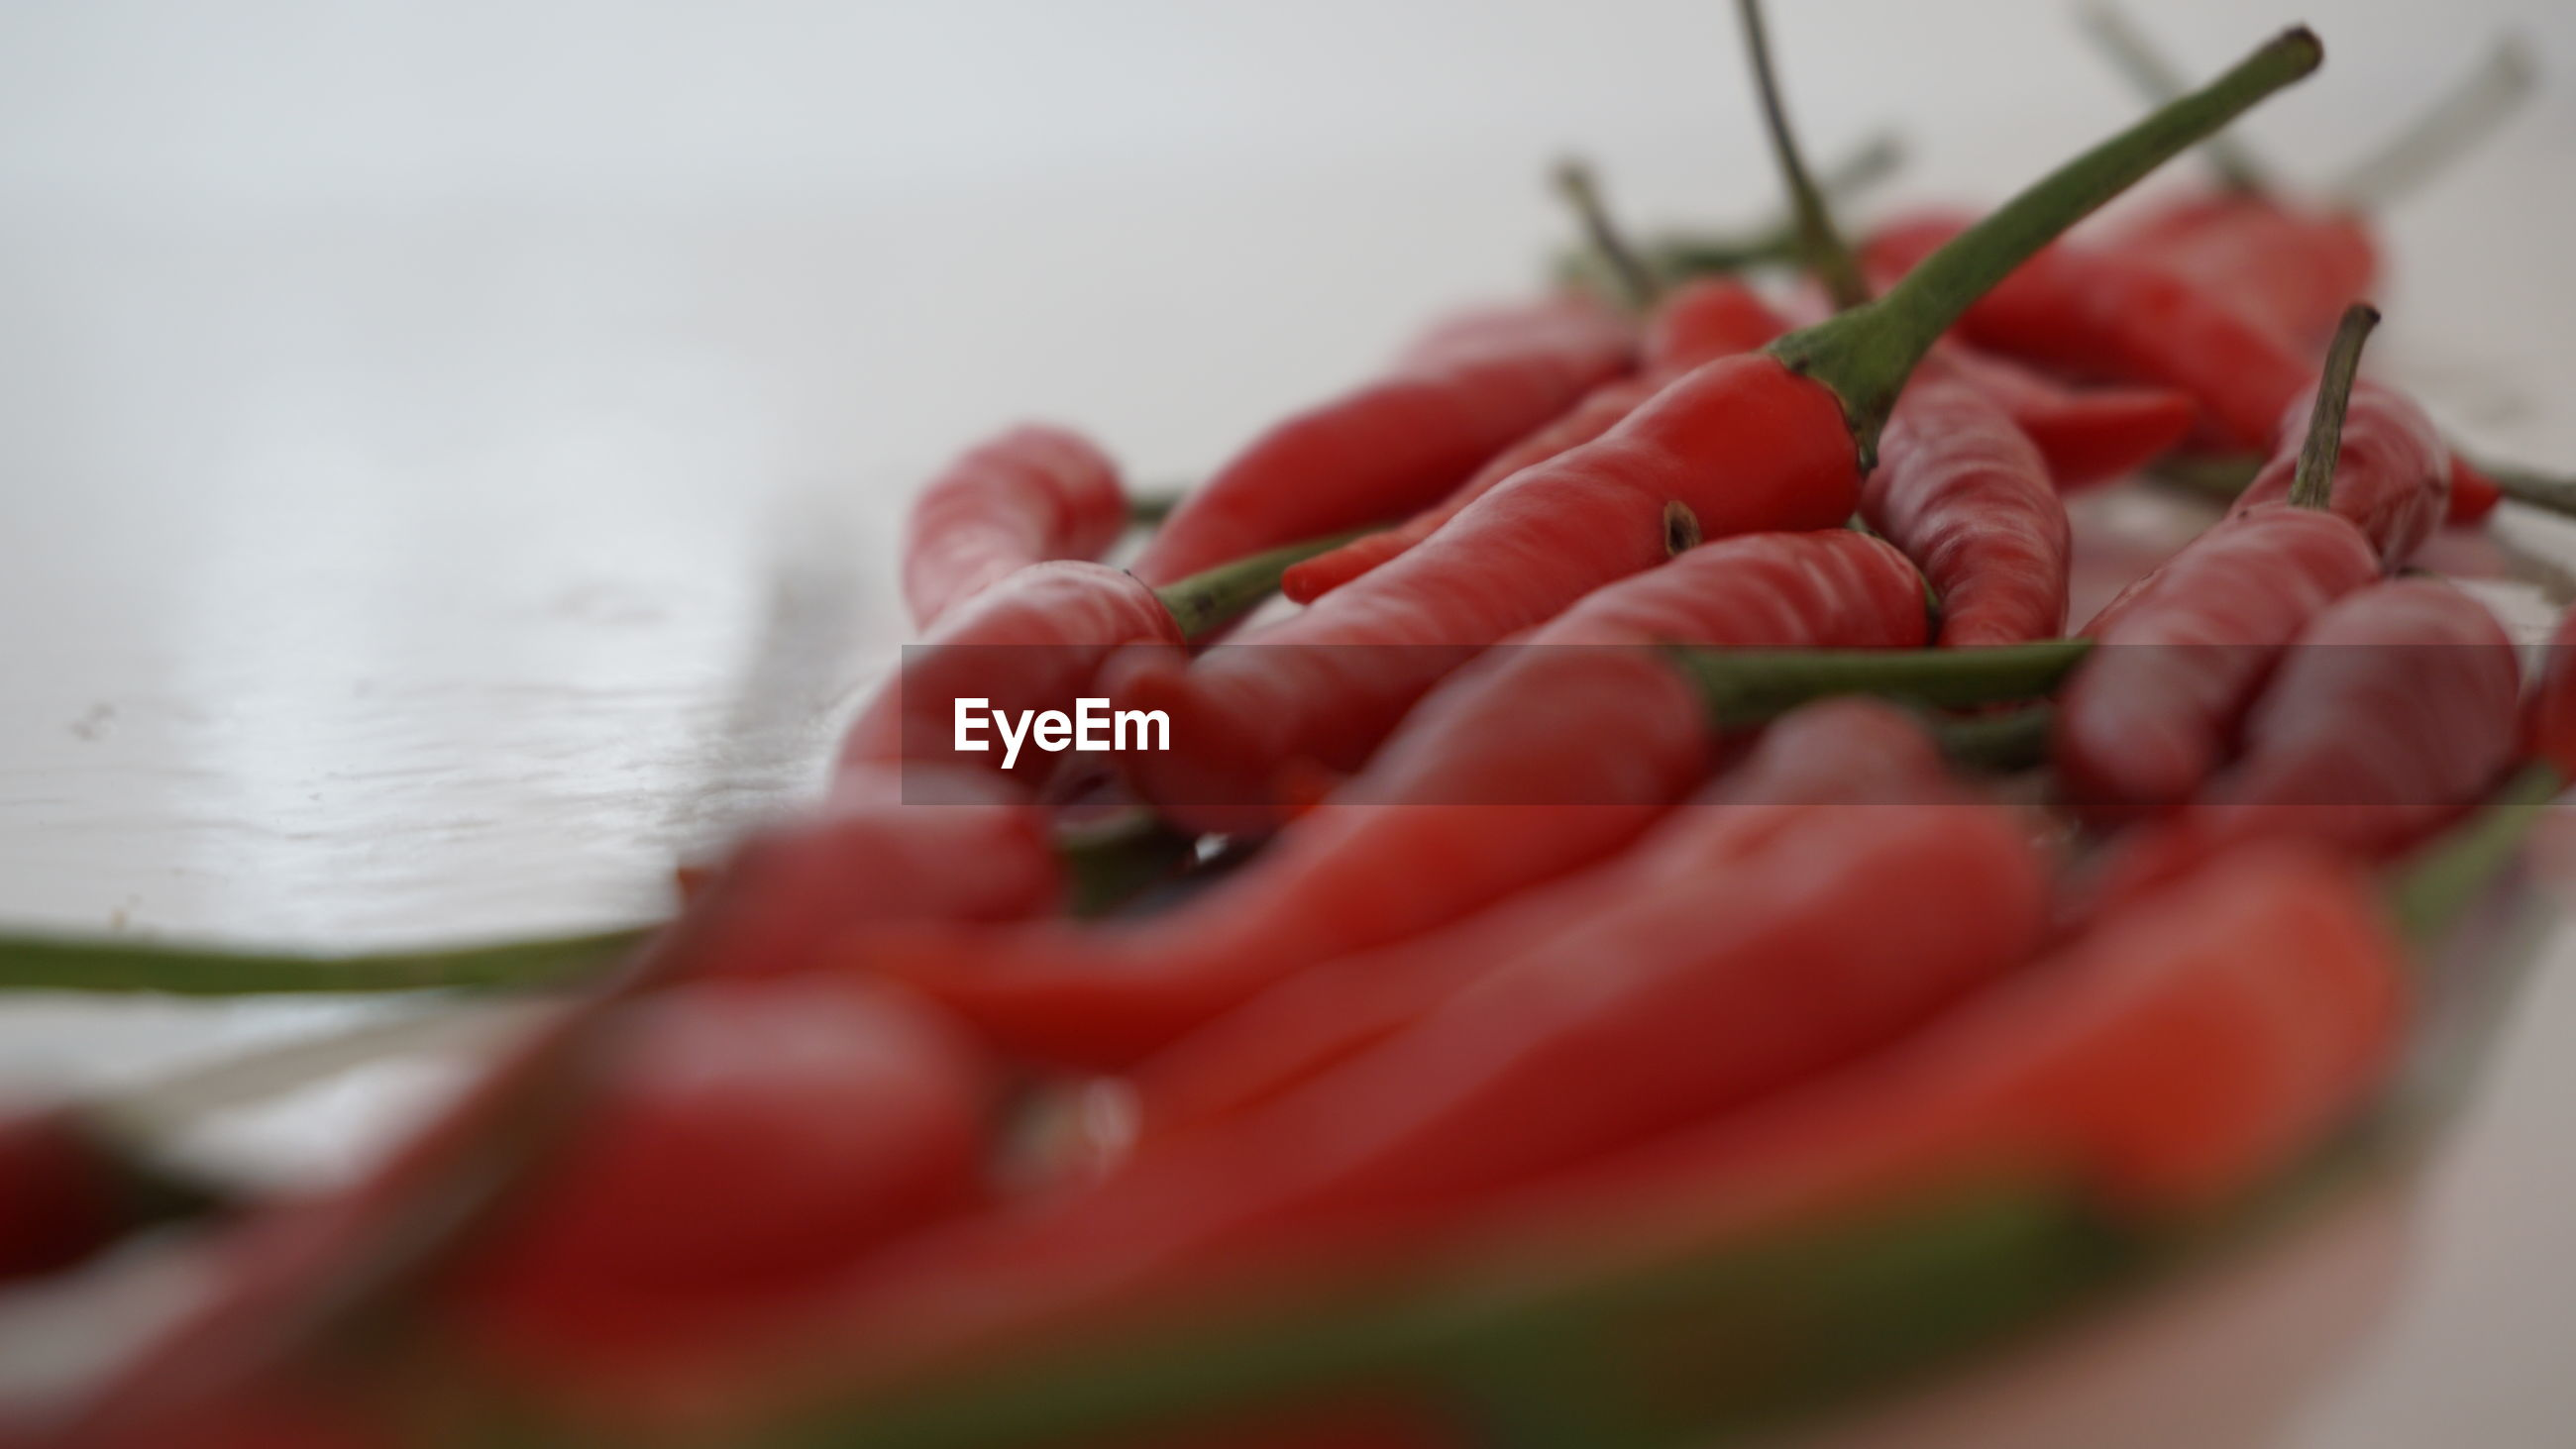 CLOSE-UP OF RED CHILI PEPPER